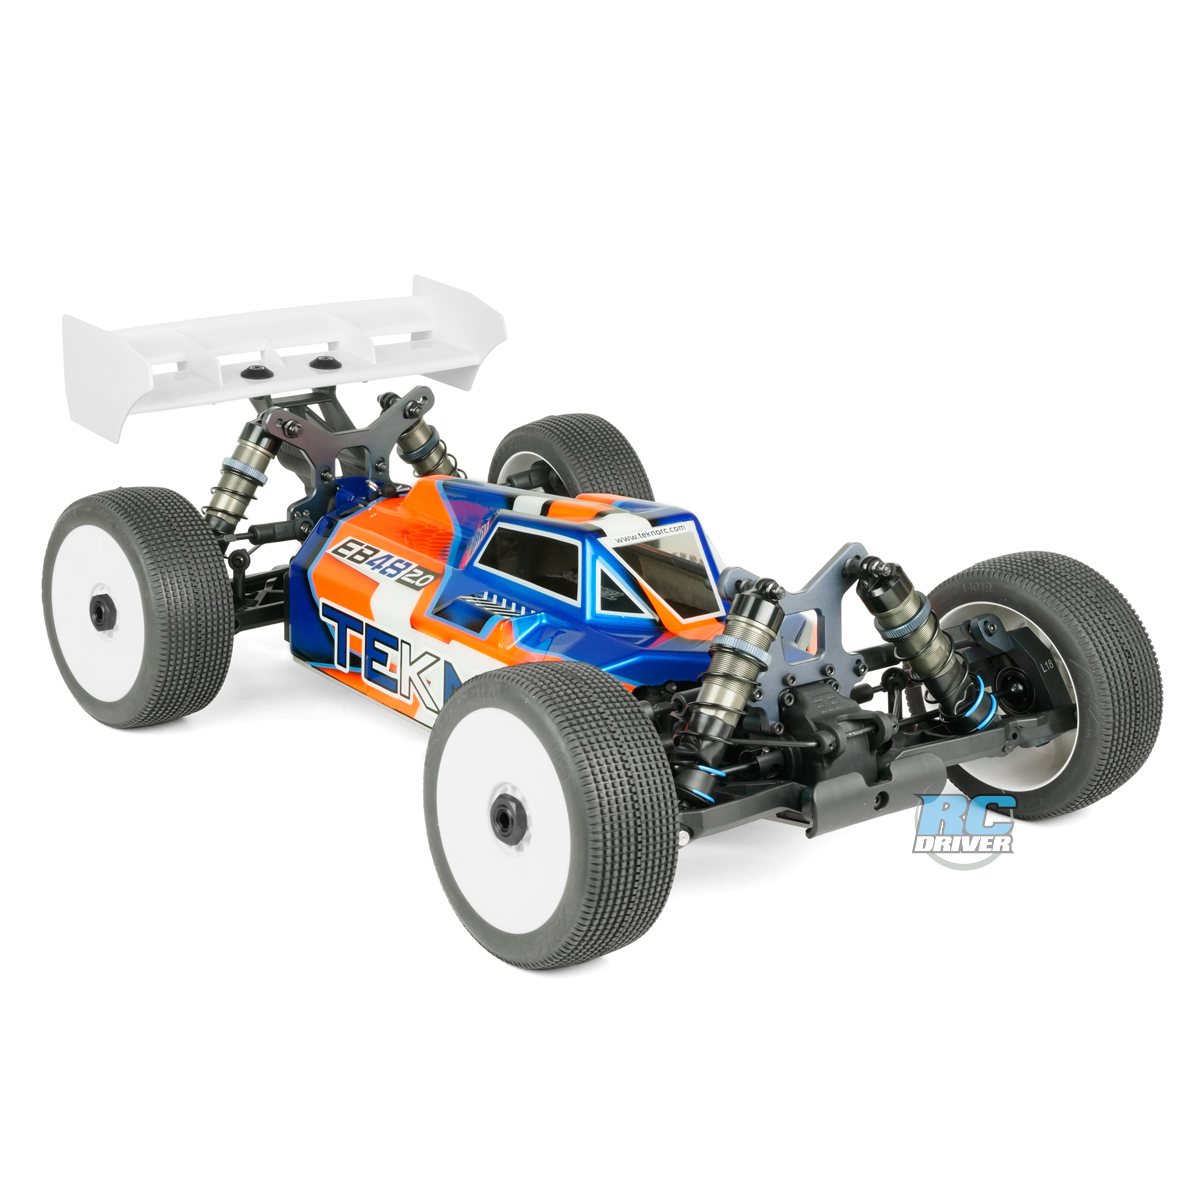 Tekno RC EB48 2.0 1/8 4WD Competition Buggy